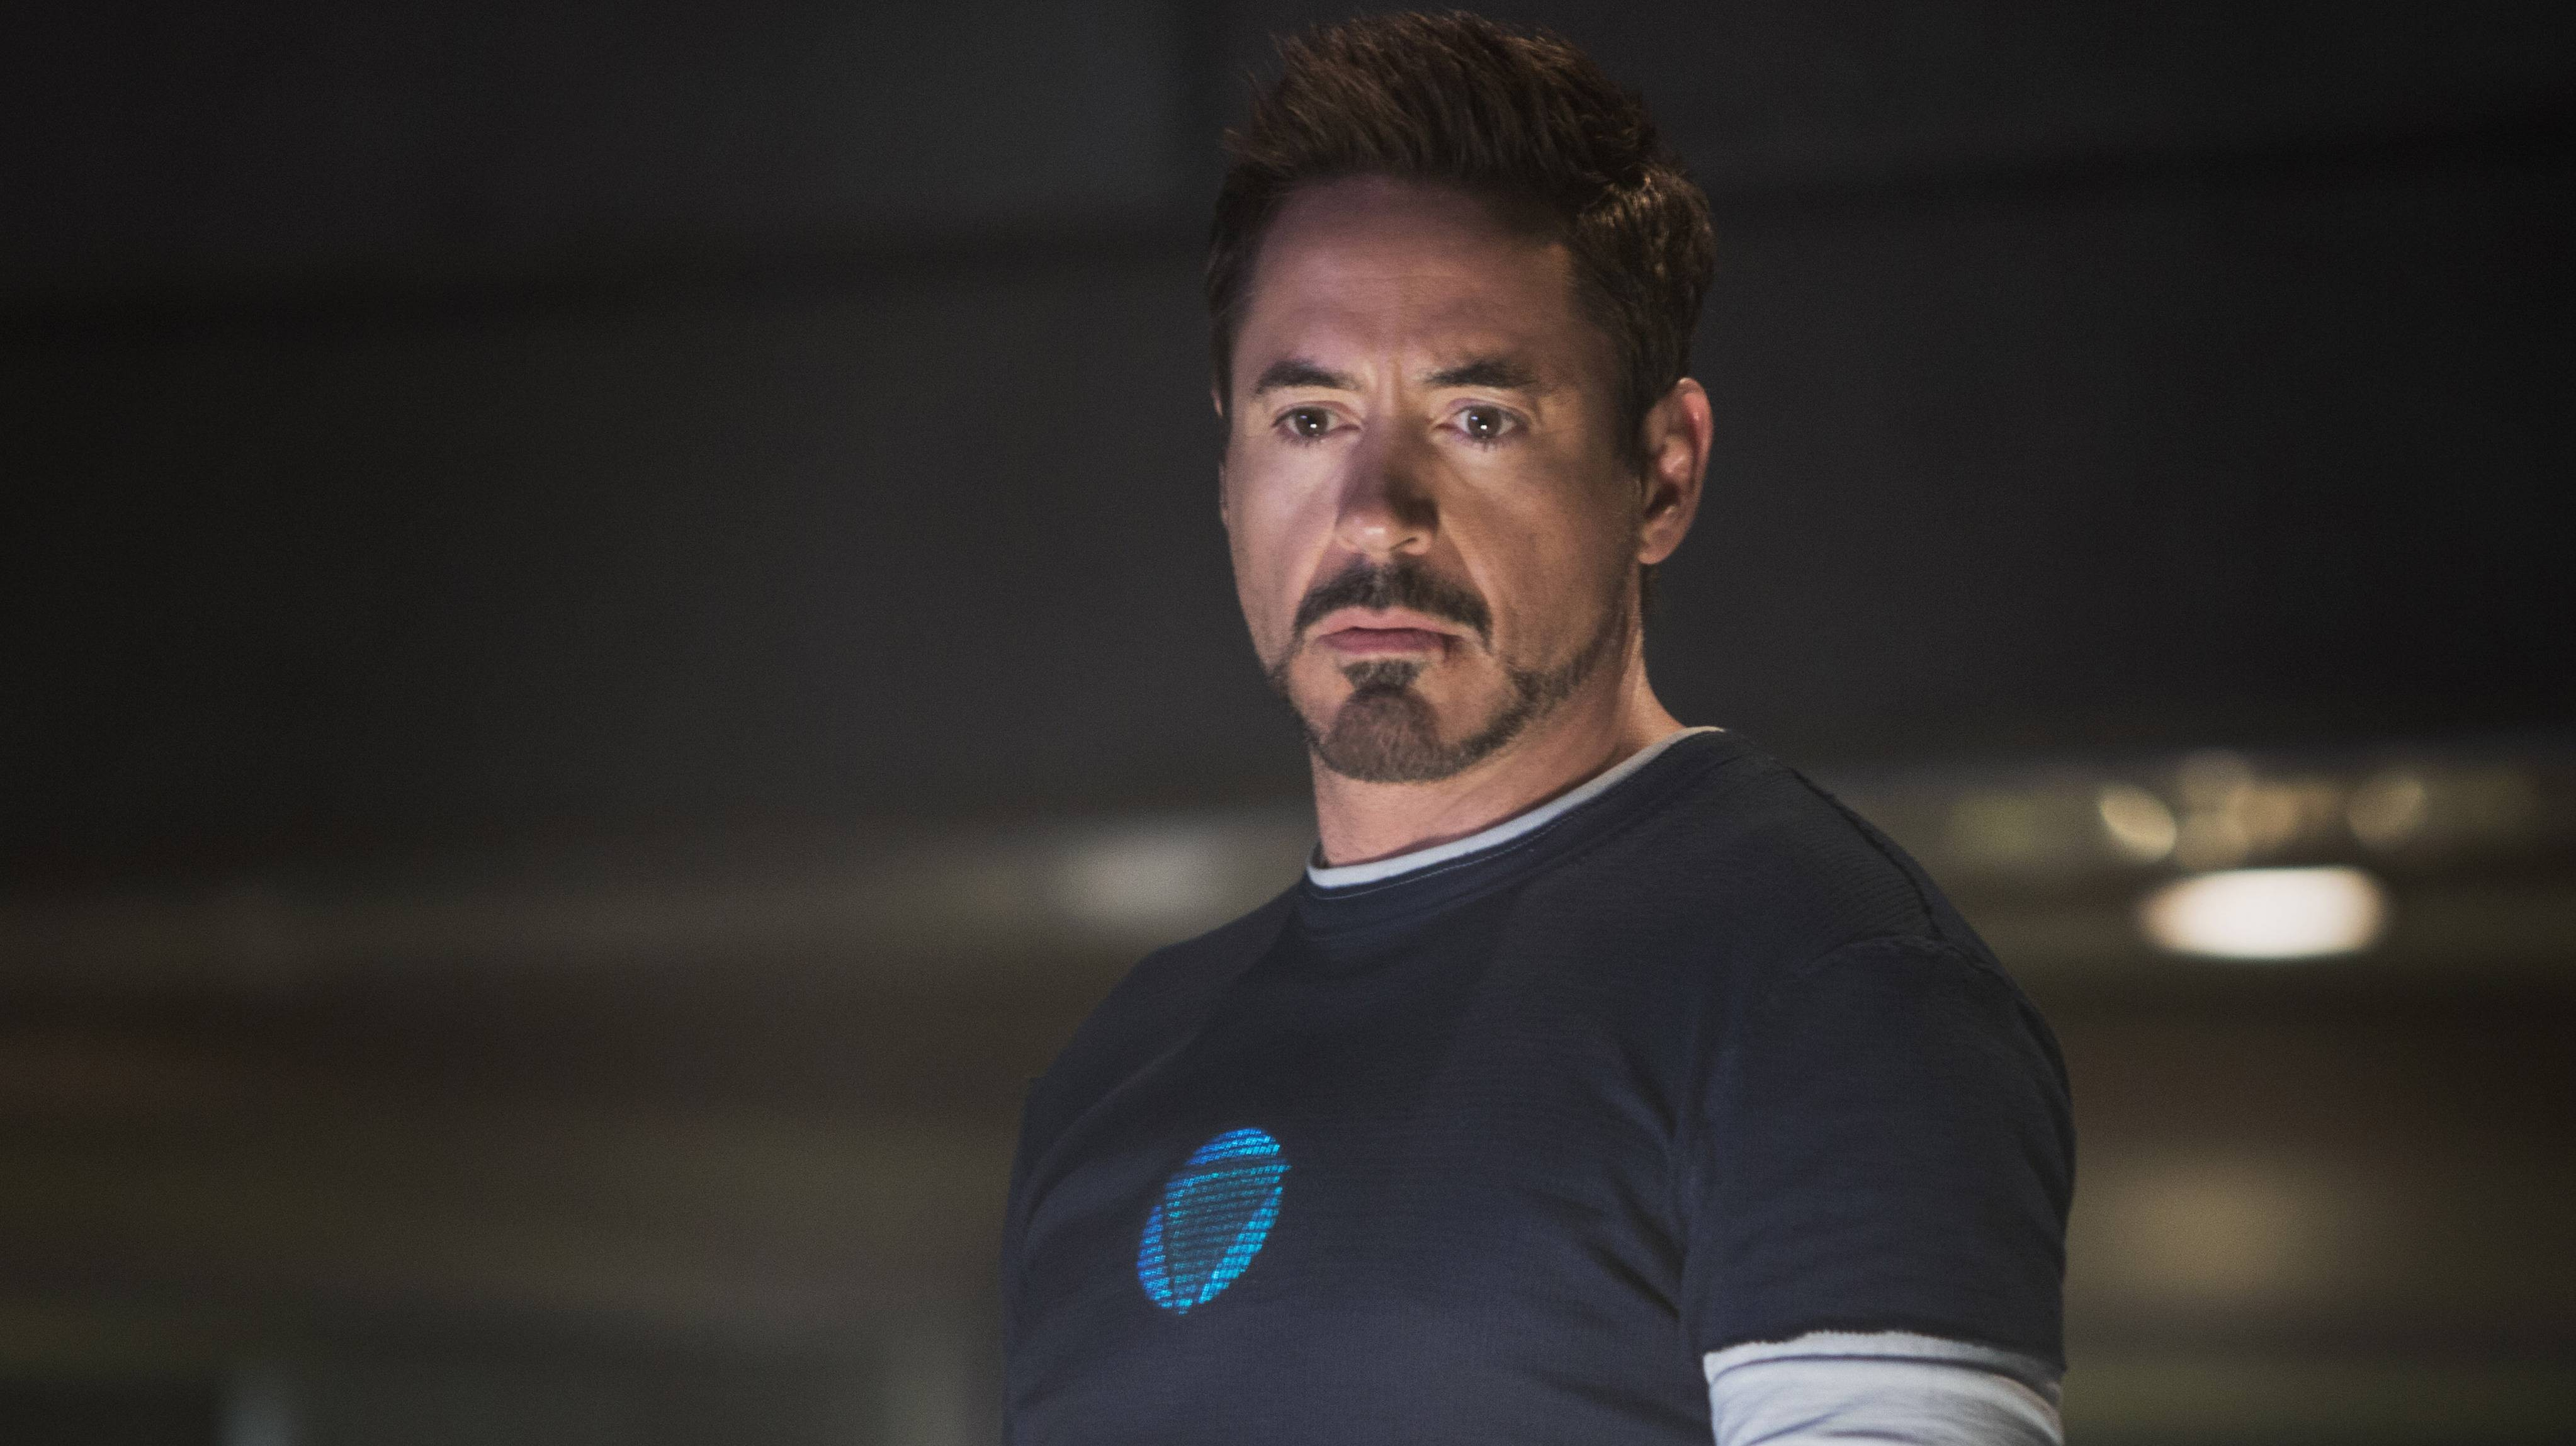 Tony Stark Wallpapers Wallpaper Cave